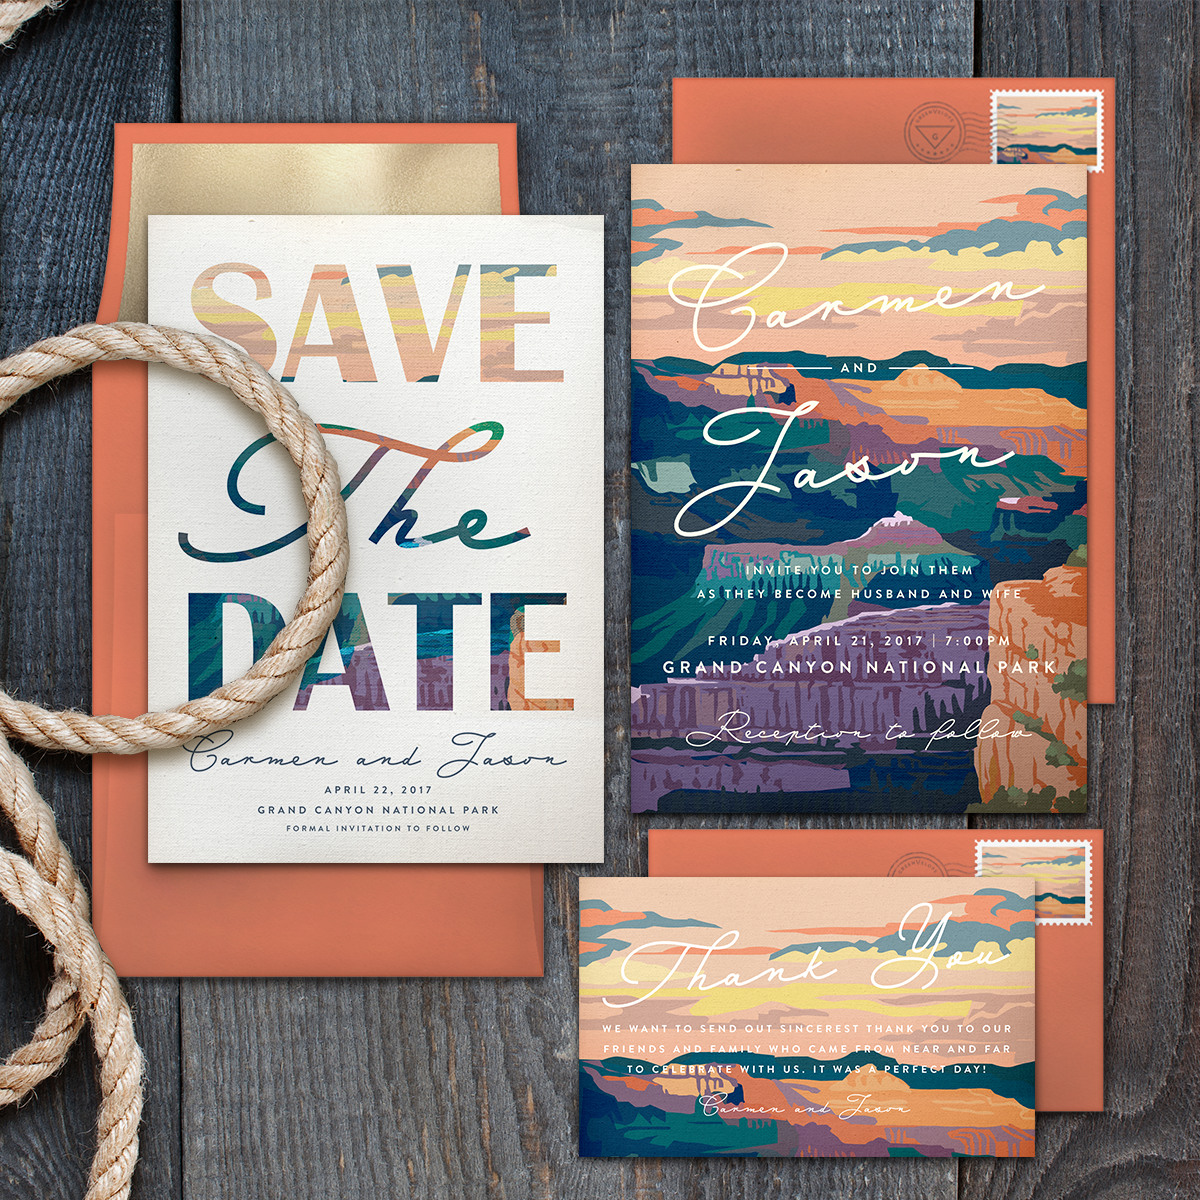 If you're in the market for wedding invitations, this local company may just change your life. Greenvelope is a local stationary company that makes paperless and customize-able wedding invitation suites. They recently partnered with the National Park Foundation to create invitations that were inspired by the landscapes that make up our national parks! Through the partnership, Greenenvelope will gift $5 of every purchase to the National Park Foundation. (Image courtesy of Greenvelope).